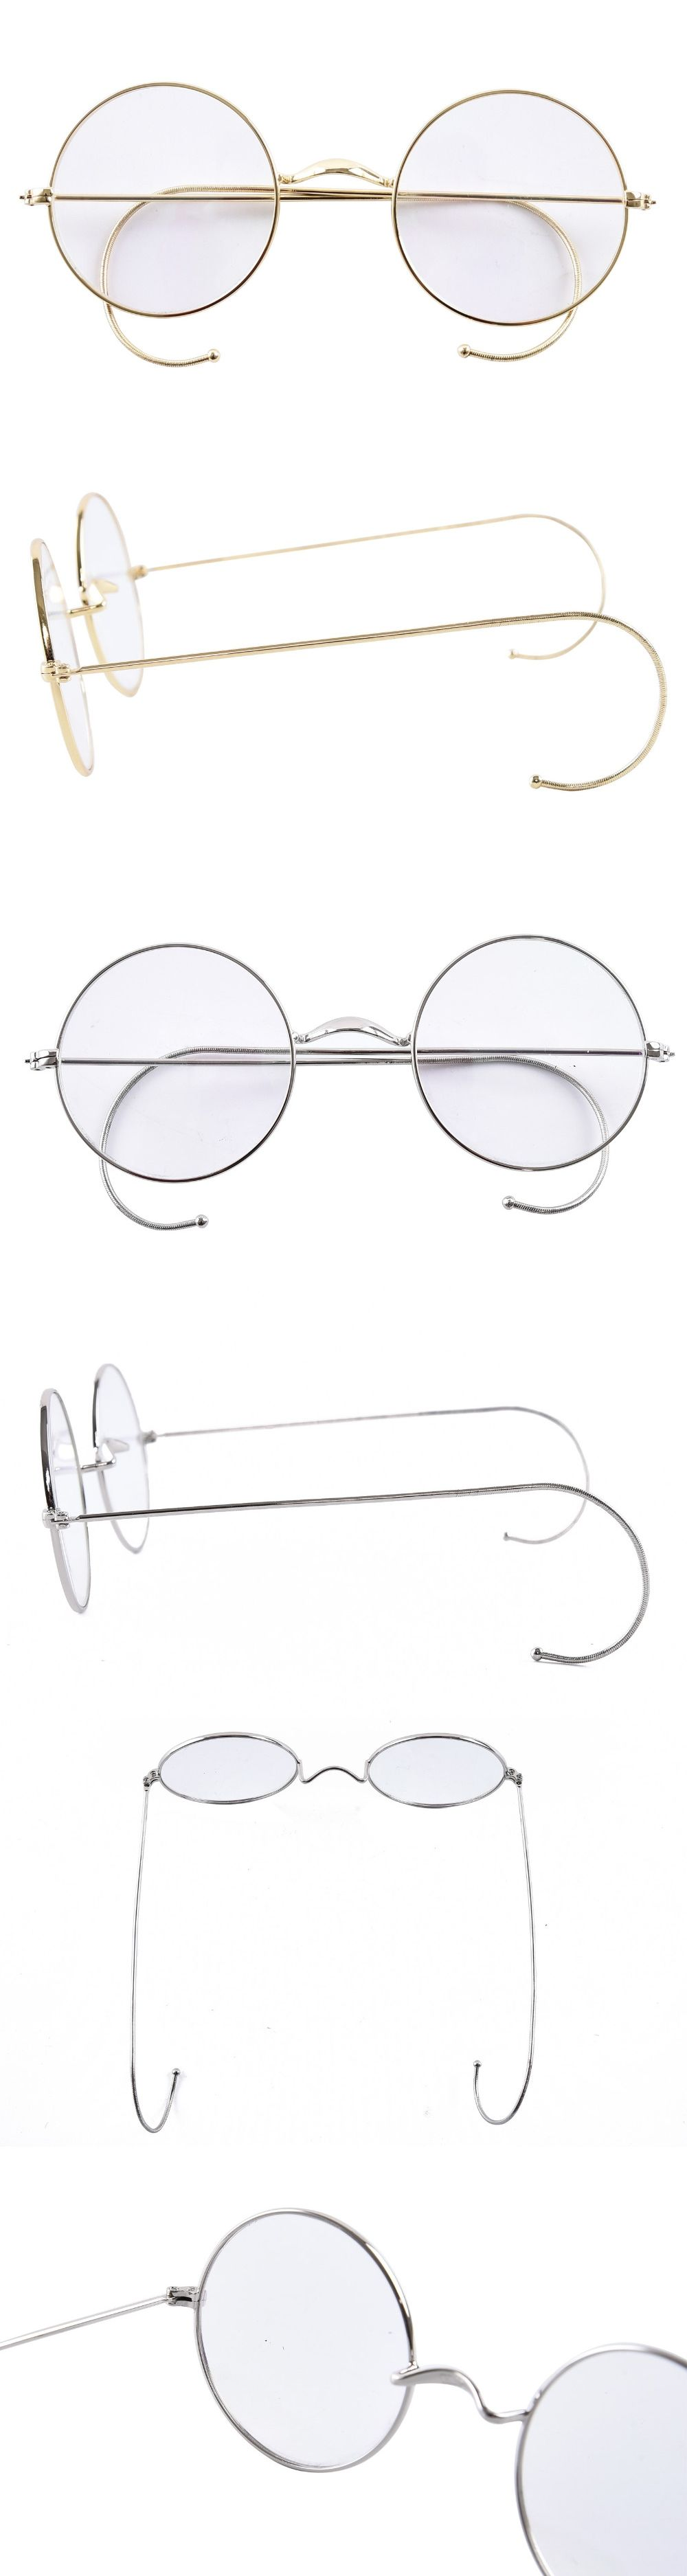 97efa5620a01 Agstum 47mm Round Optical Rare Wire Rim Prescription Harry Potter Style  Eyeglasses Frame Without Nose Pads